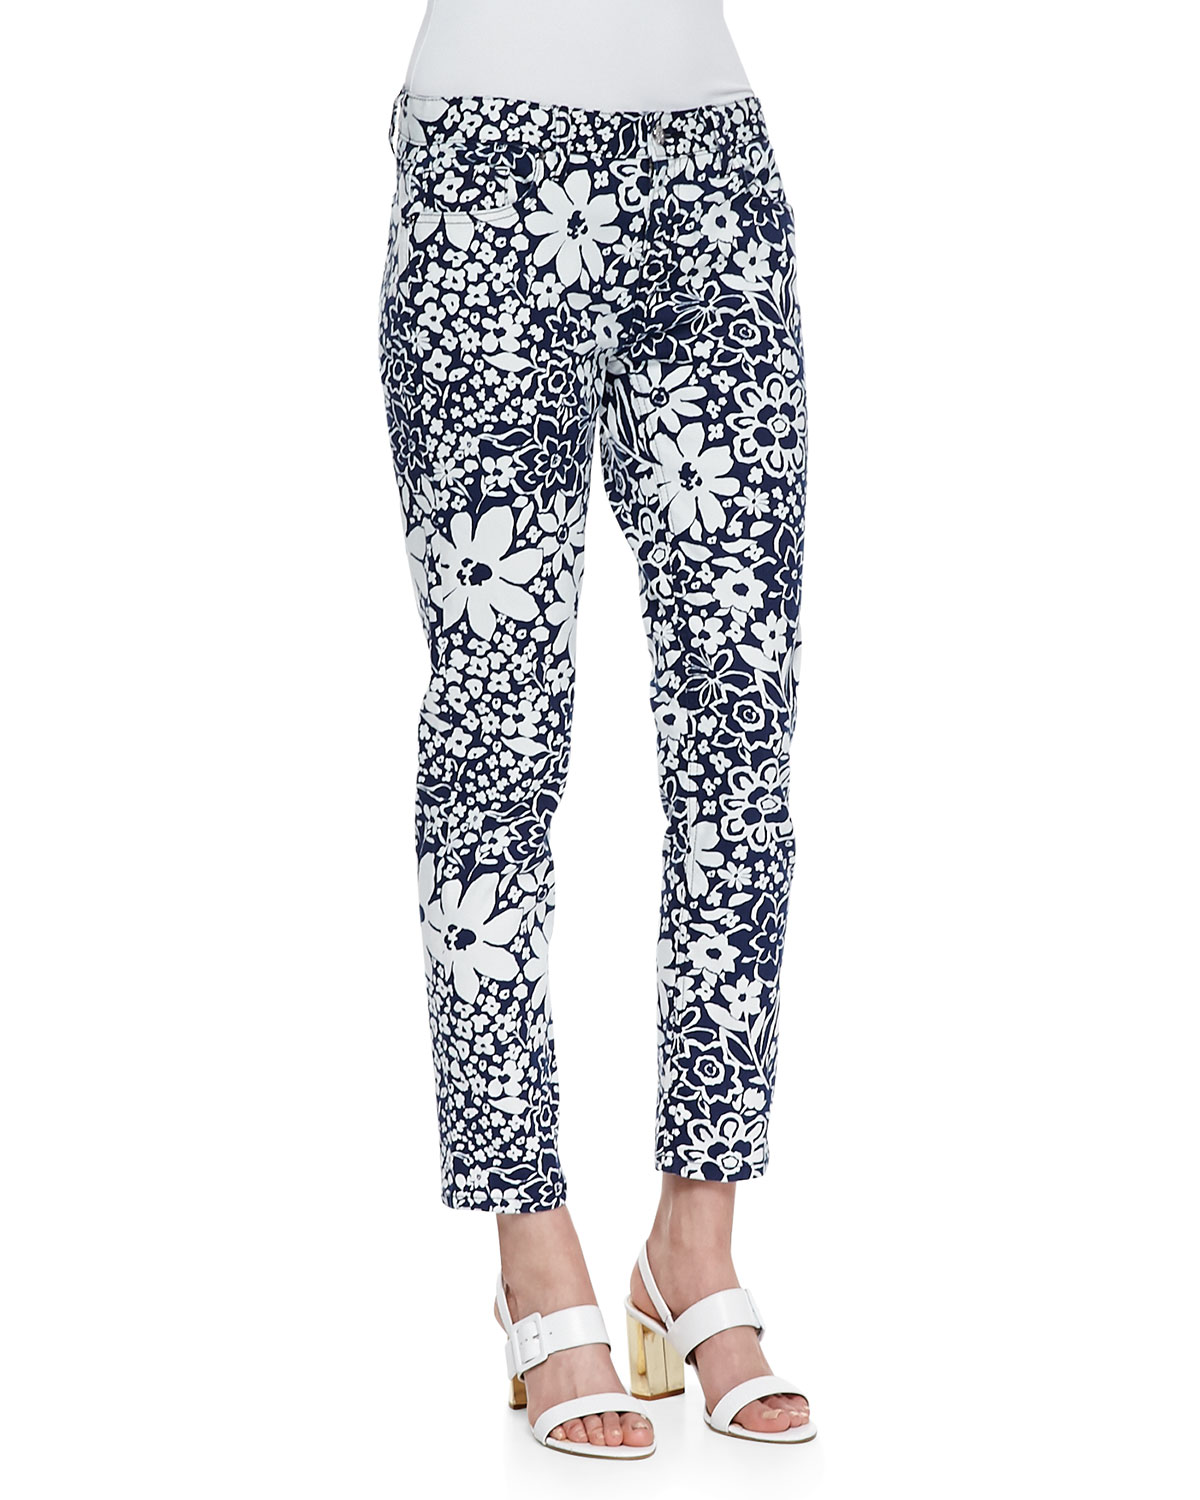 Womens broome street floral capri pants, white/french navy   kate spade new